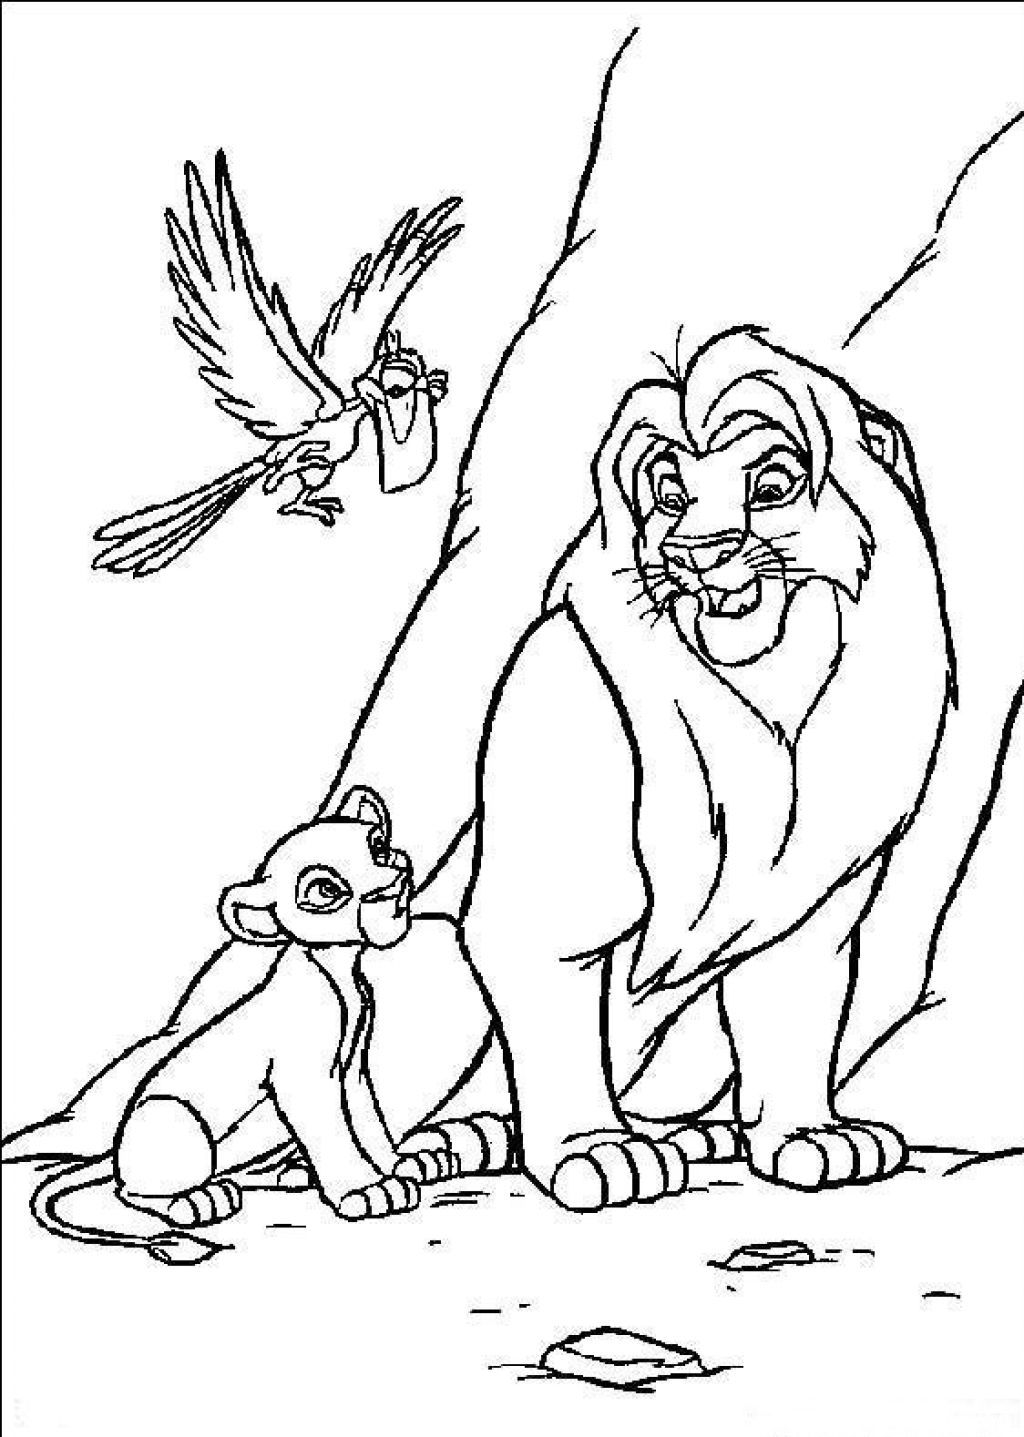 el coloring pages - photo#48